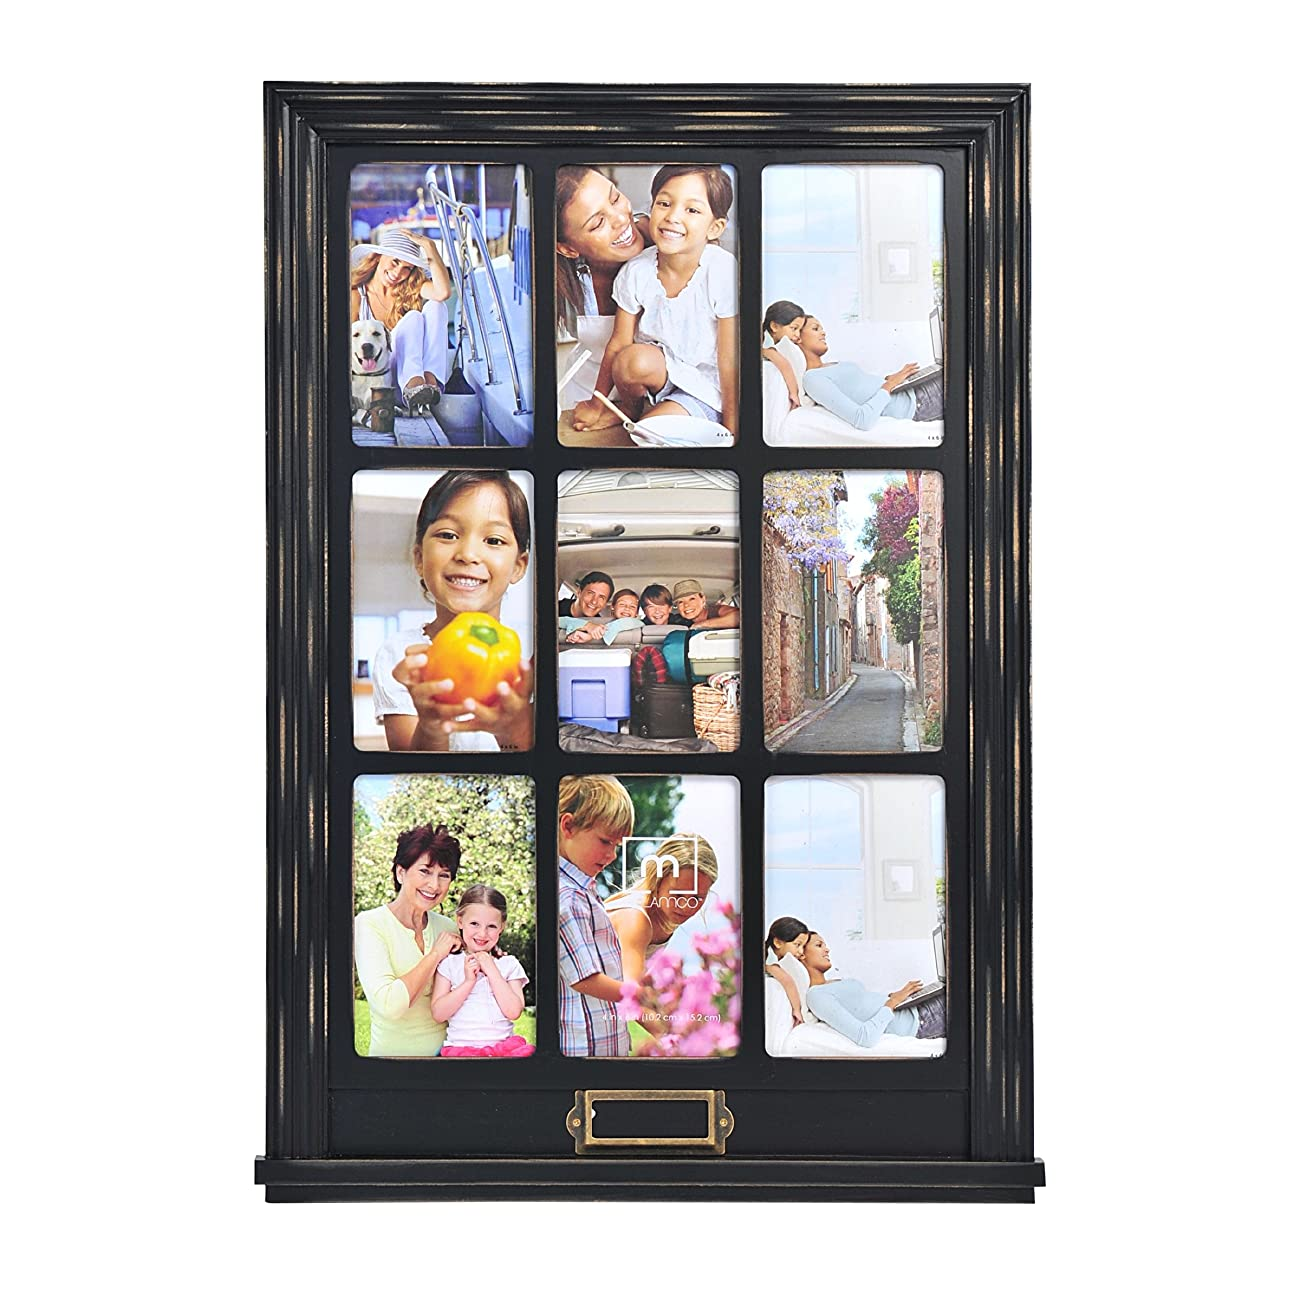 Melannco 9-Opening Window Collage (Distressed Black) 0